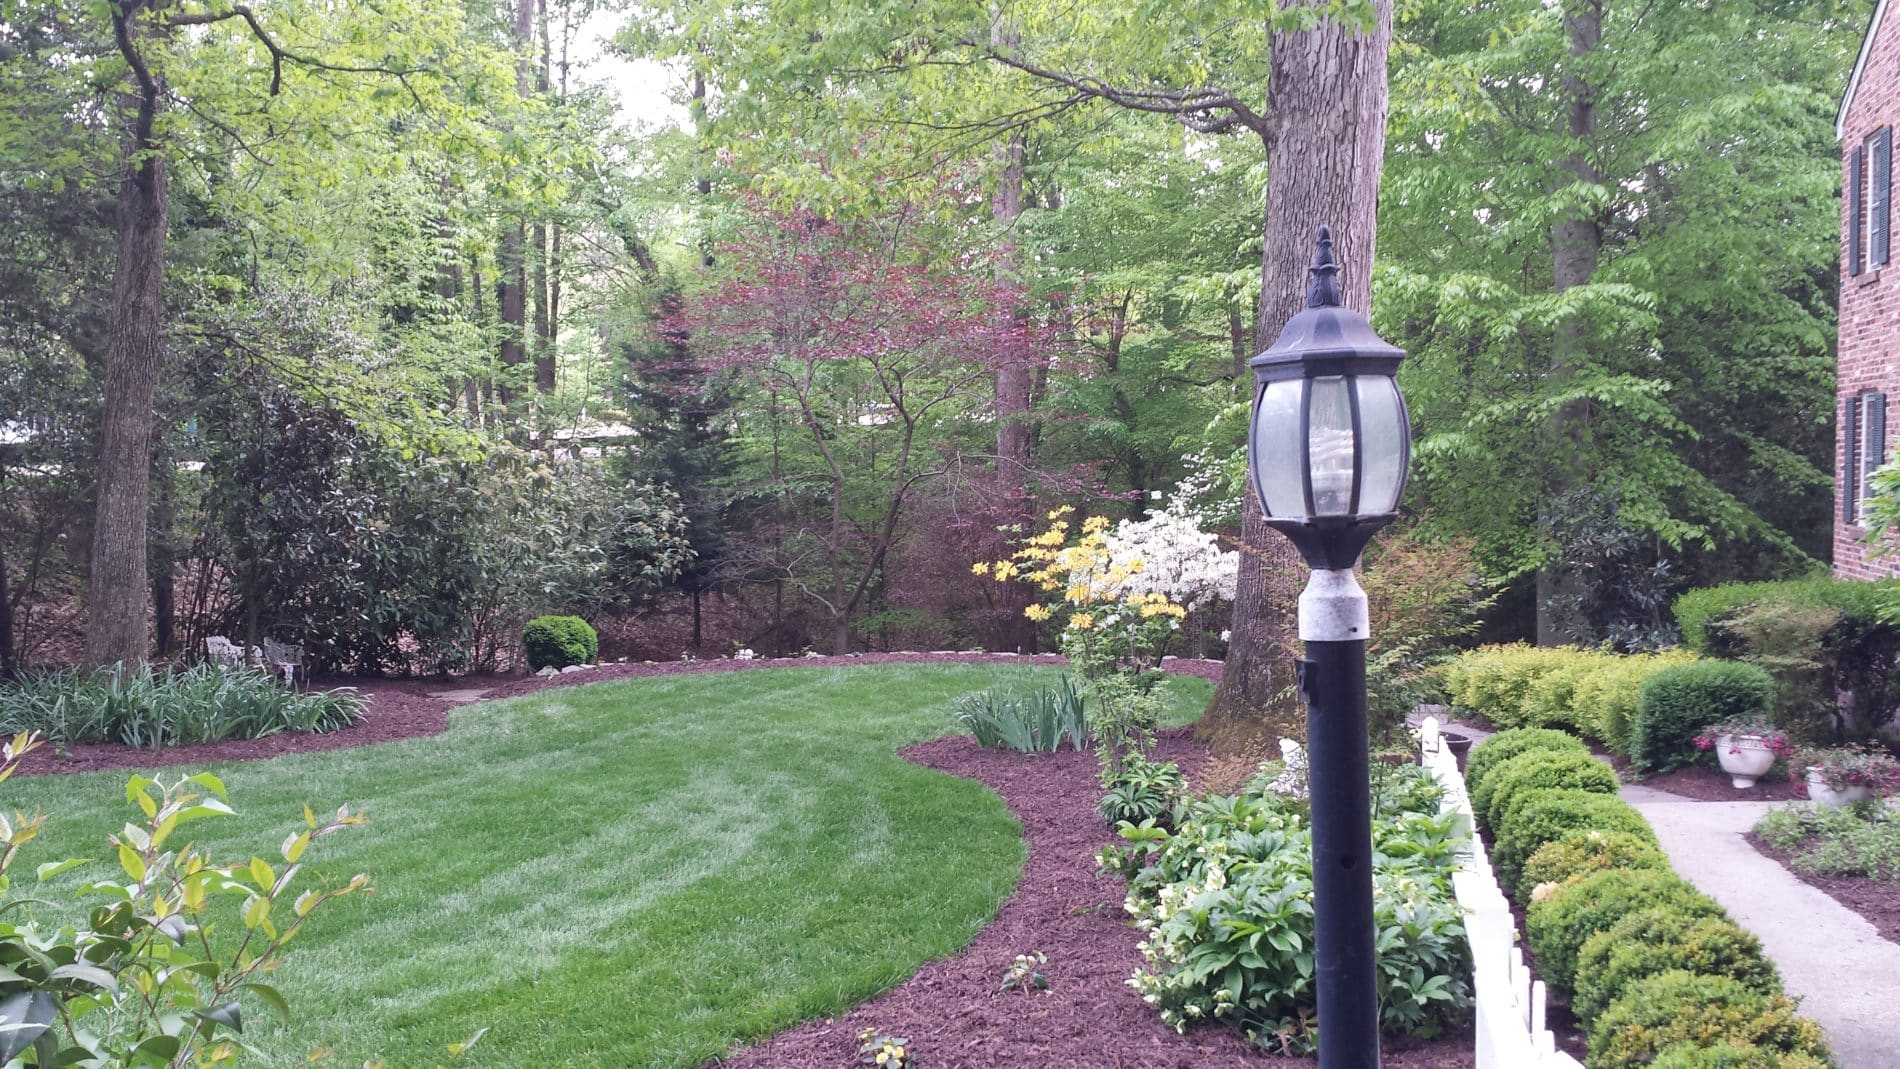 Green lawn in front of B&B with trees and bushes and black lamp post